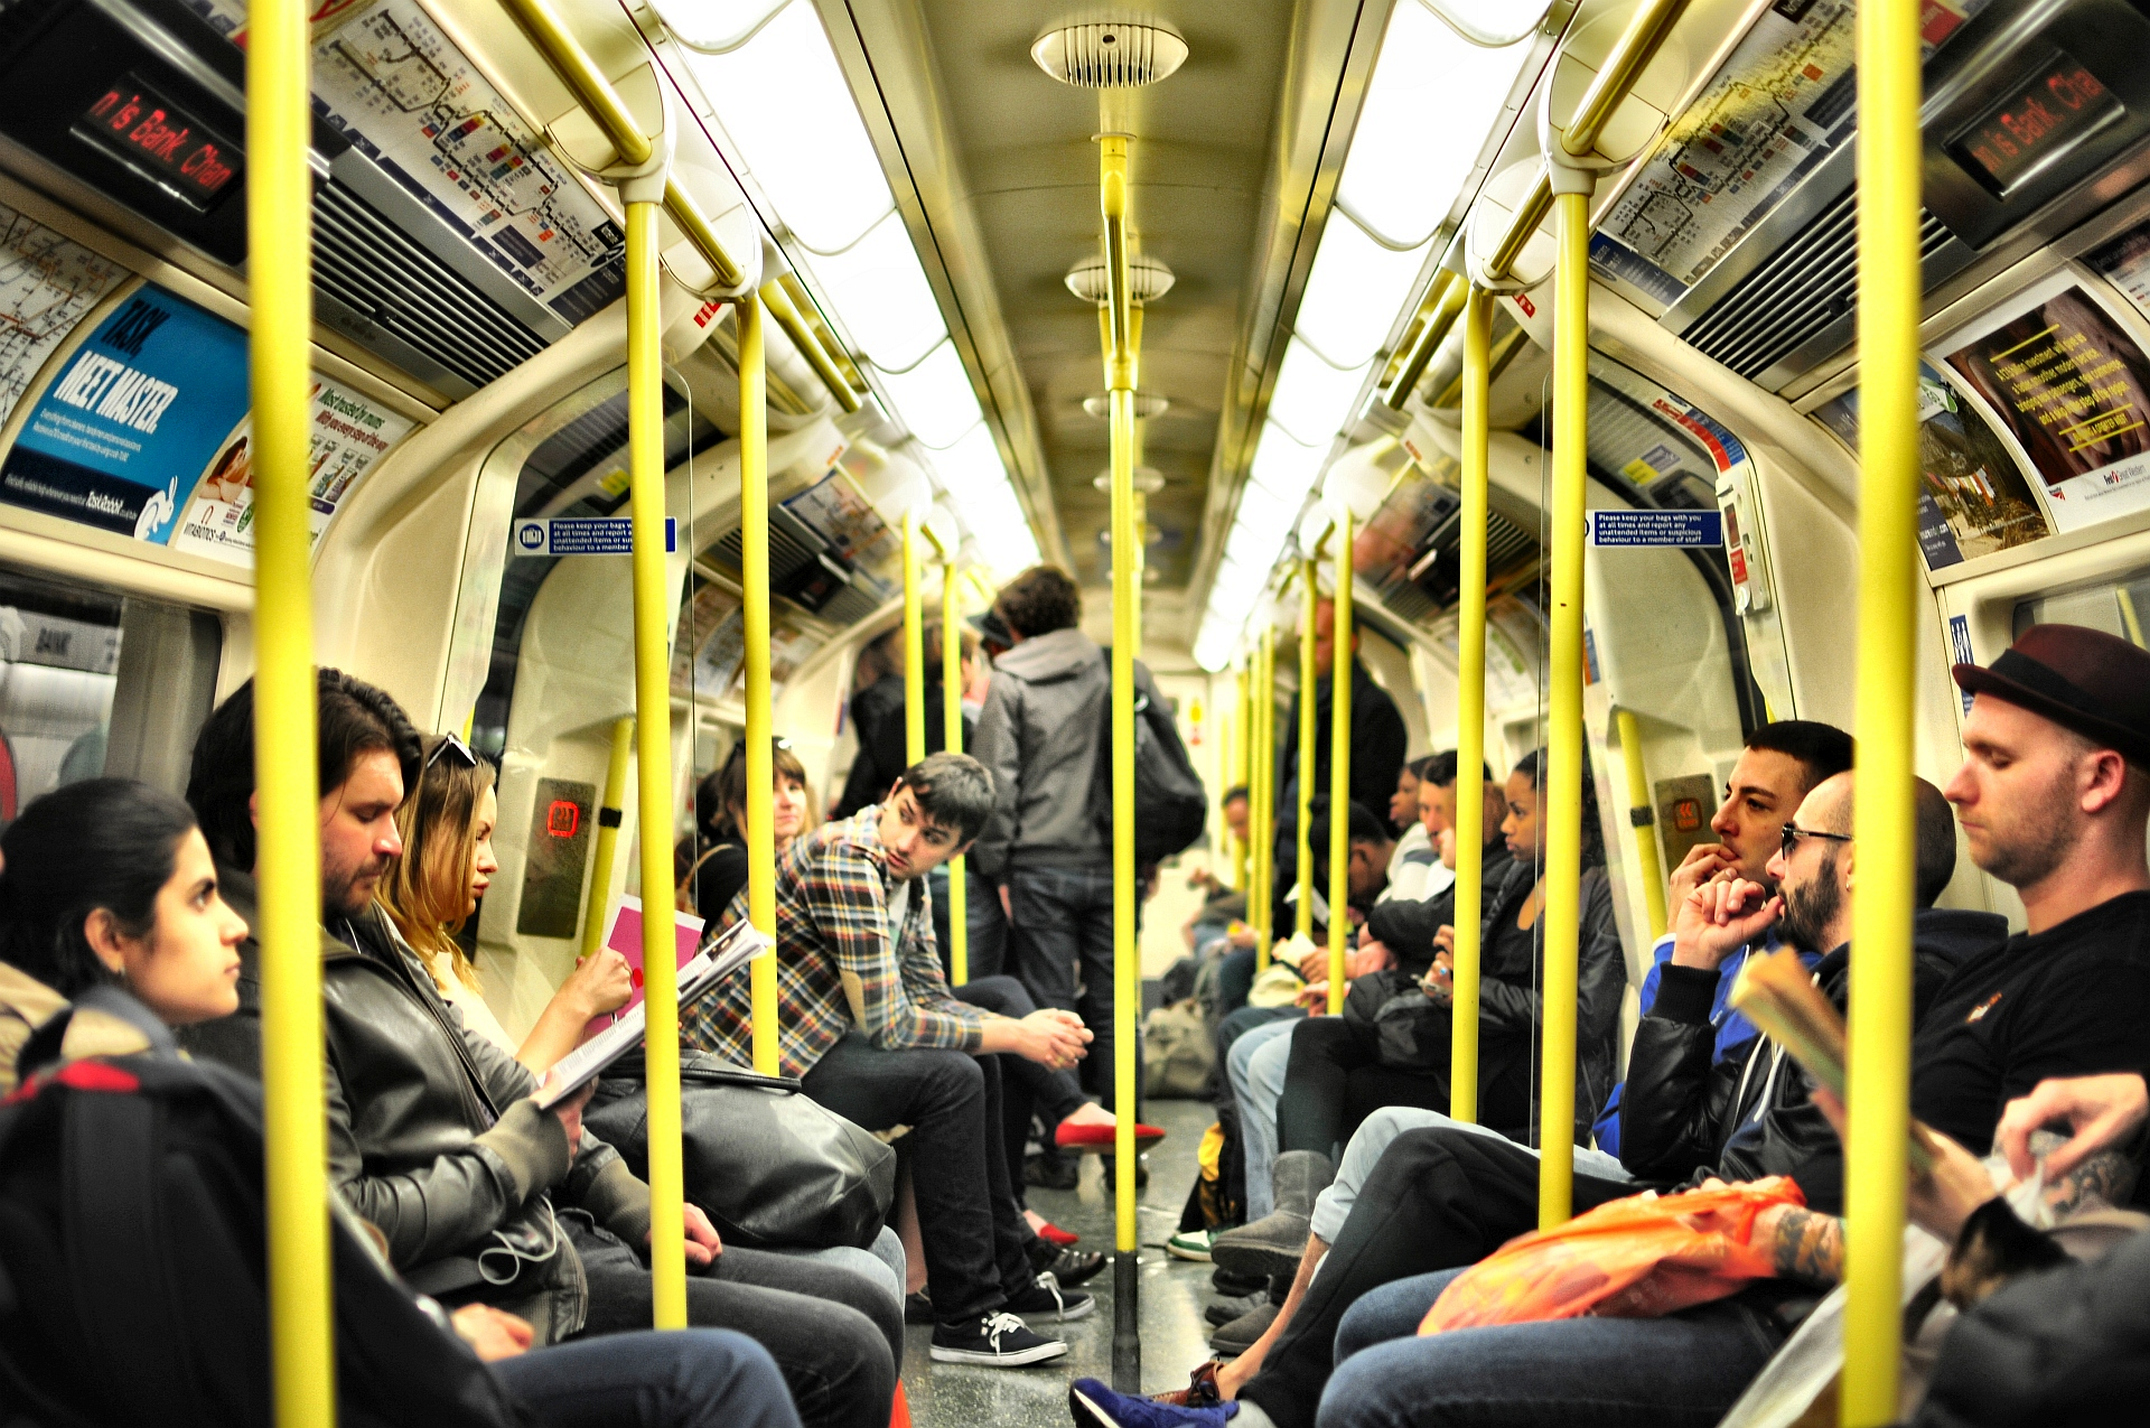 Commuters on the London Underground